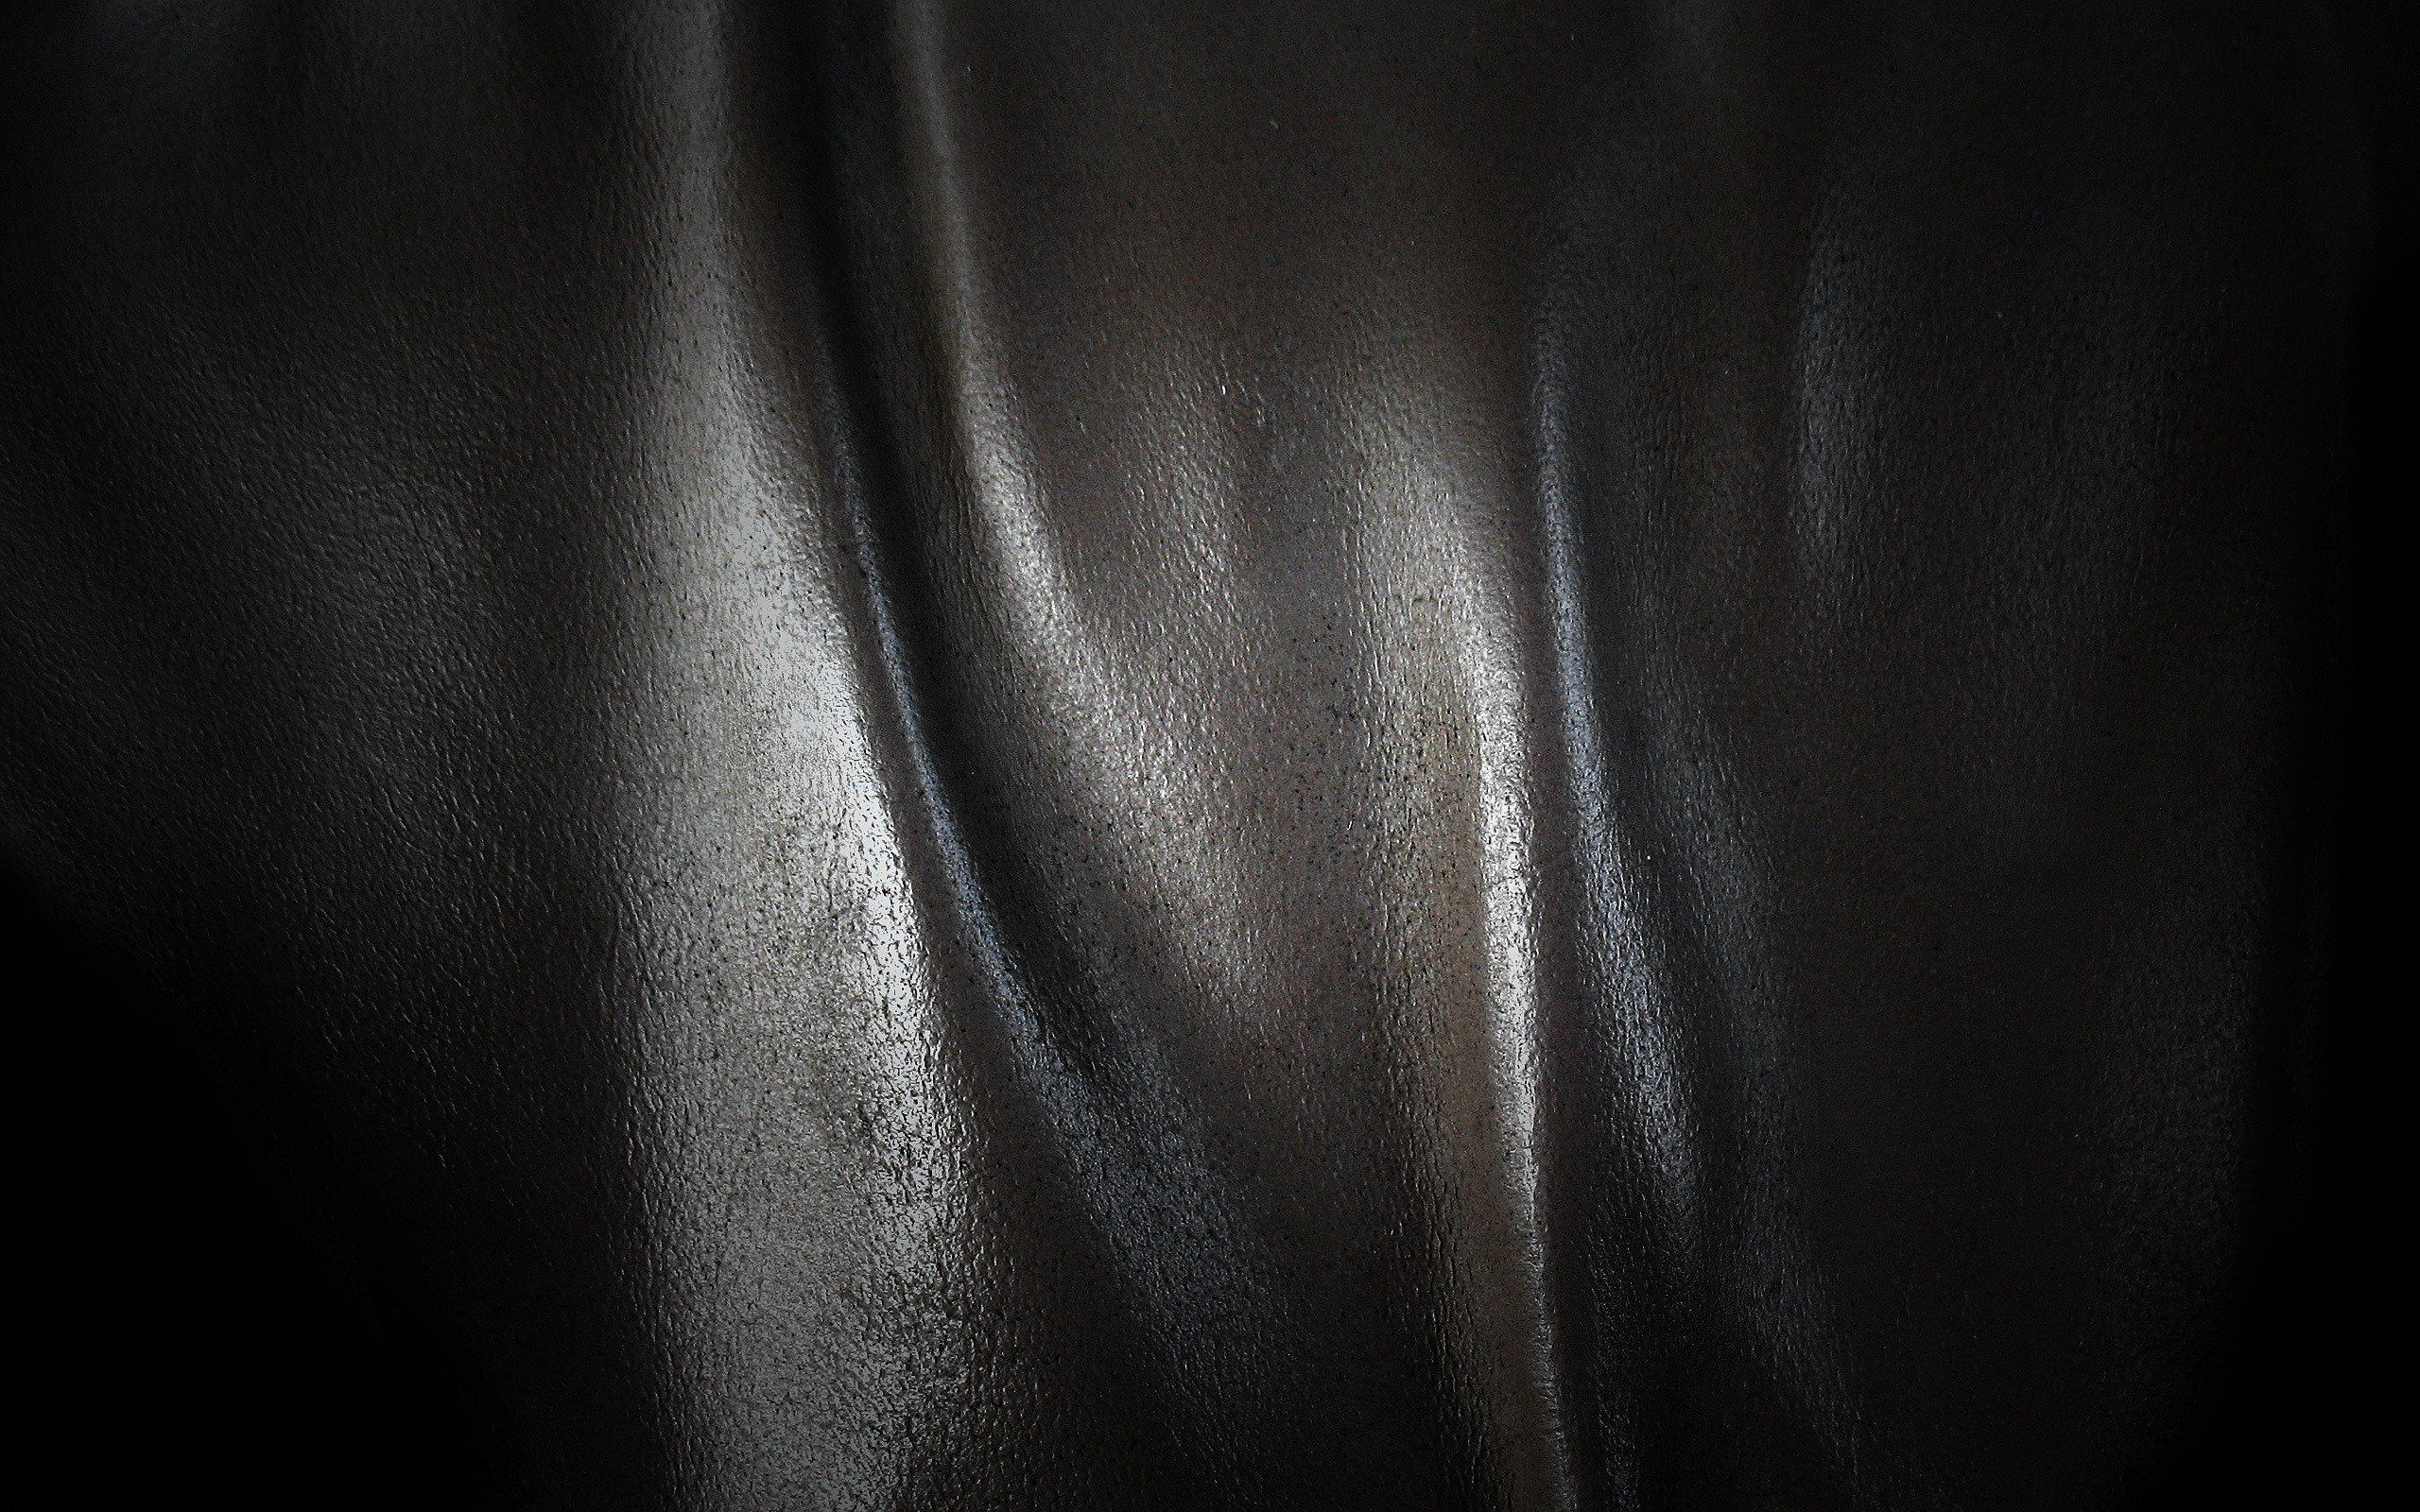 Black Leather Backgrounds Free Download Black curtains